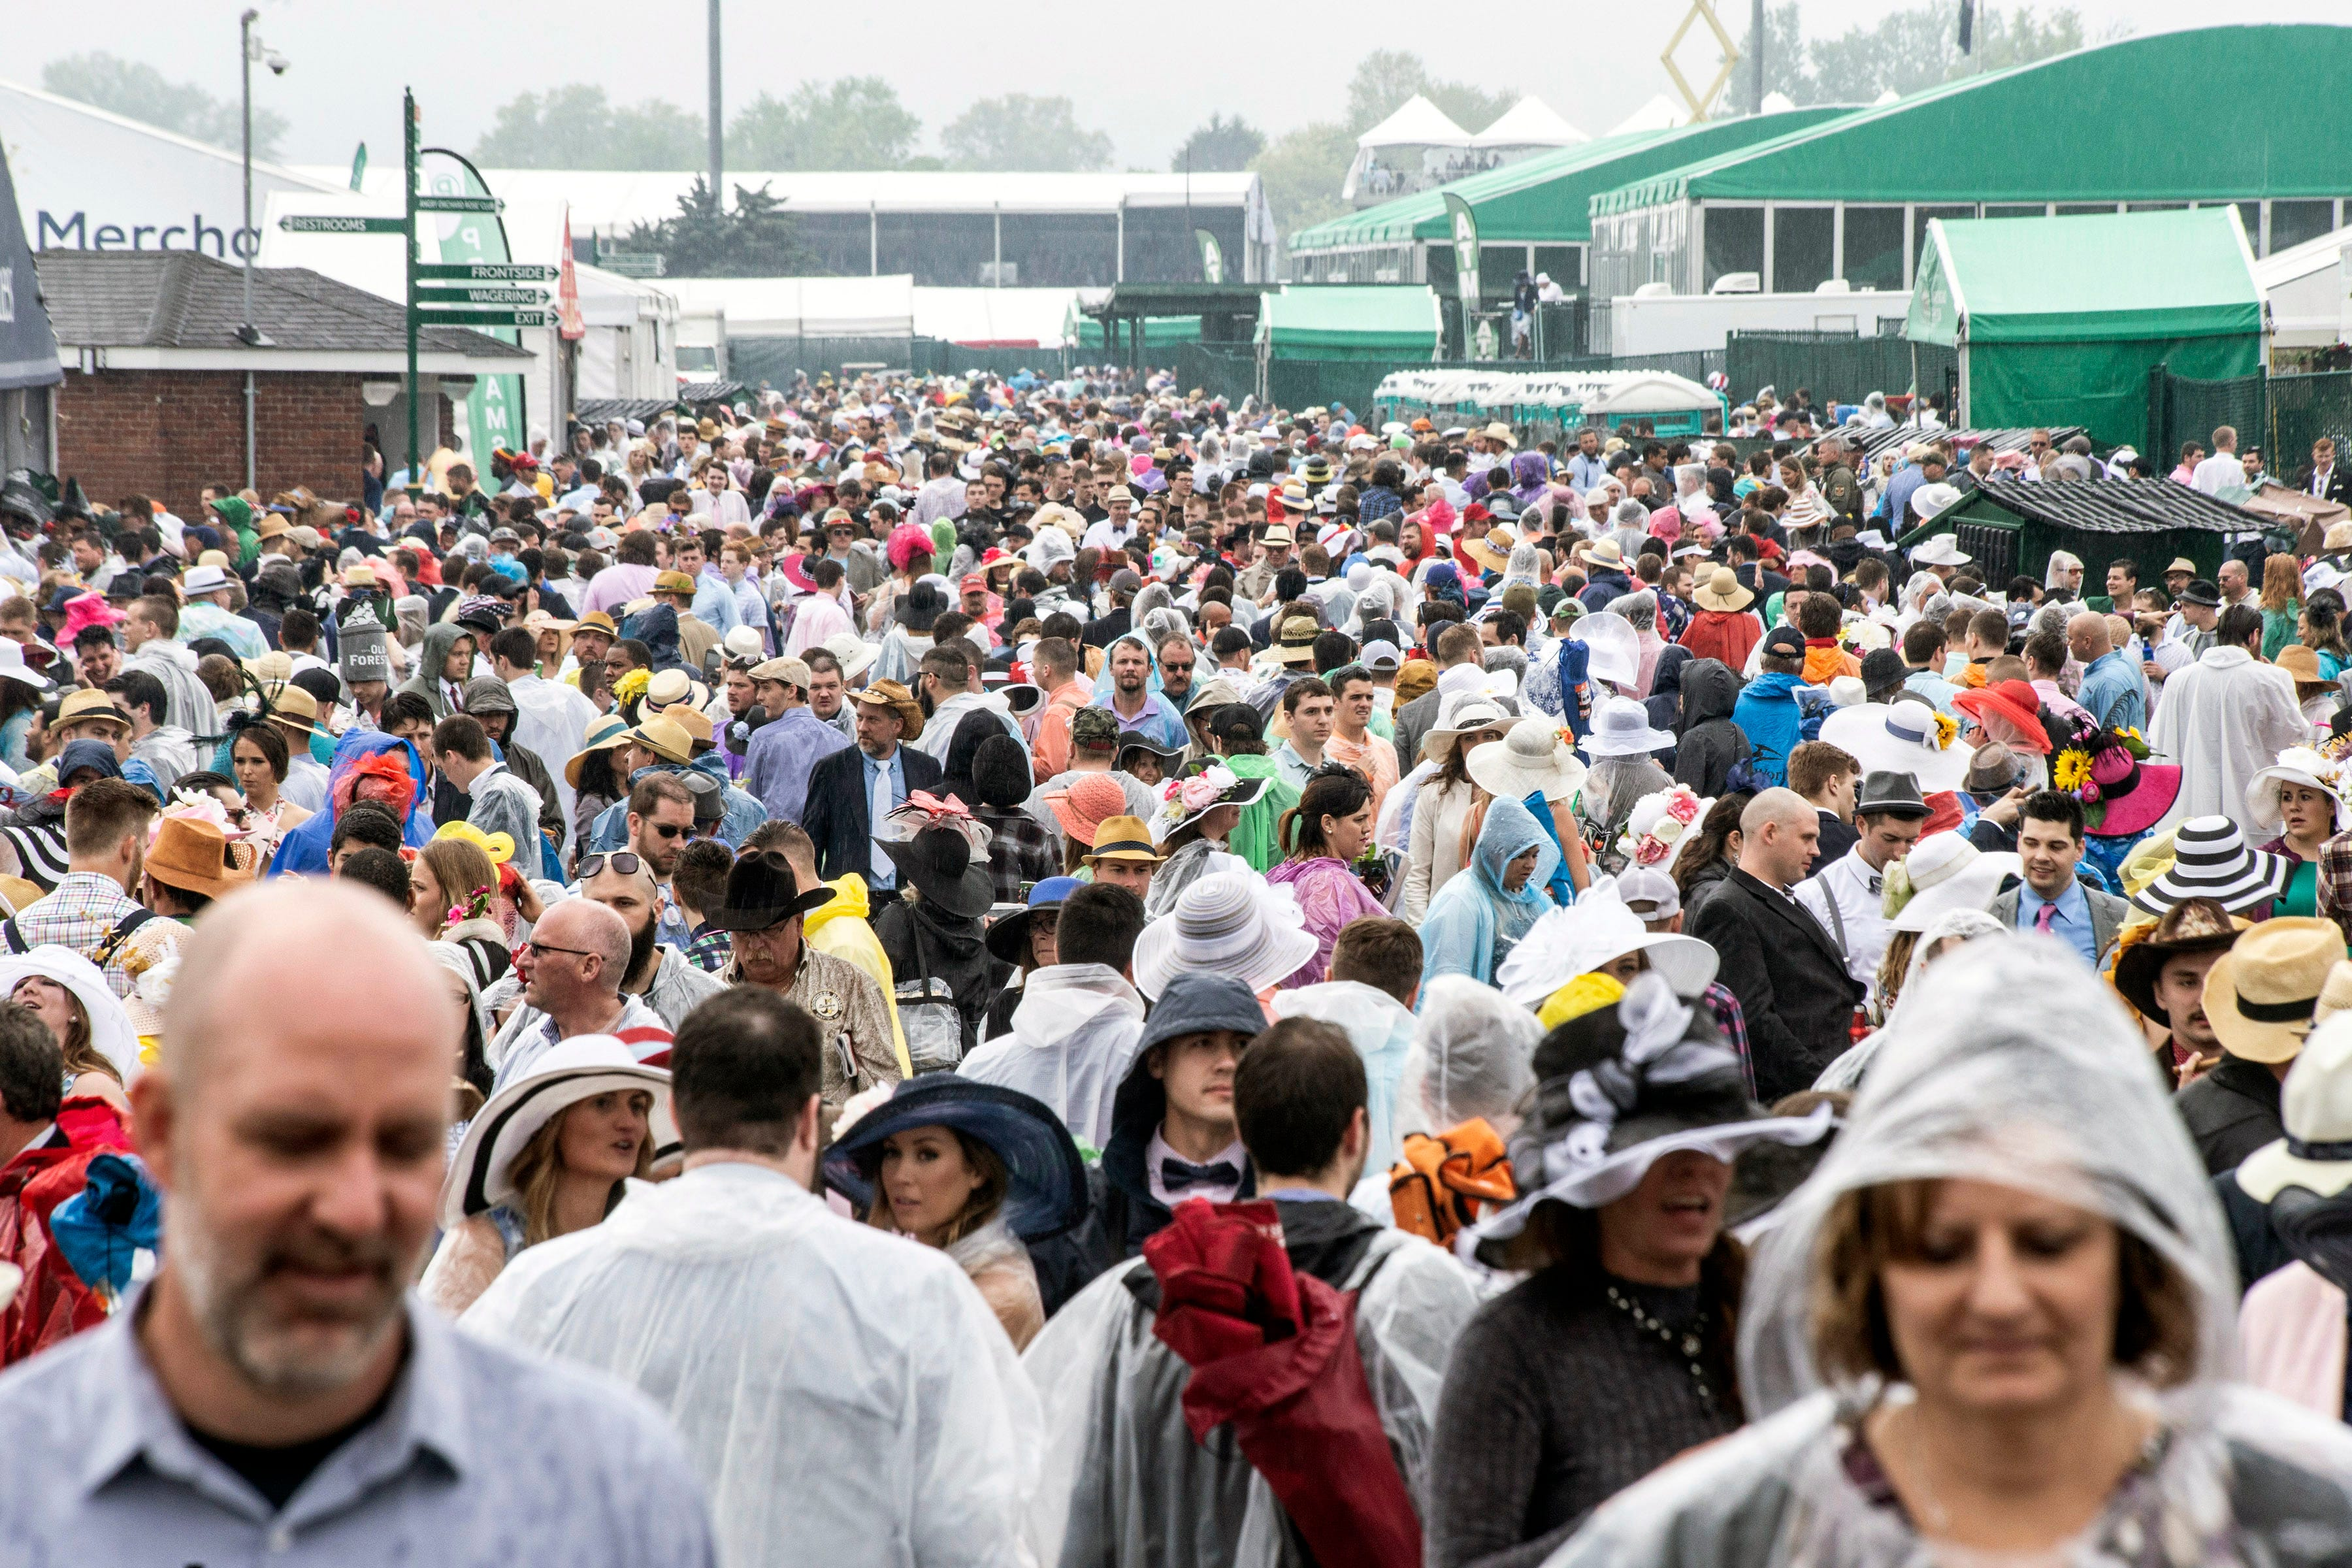 Don't get scammed this Kentucky Derby  Tips to avoid the ticket tricks